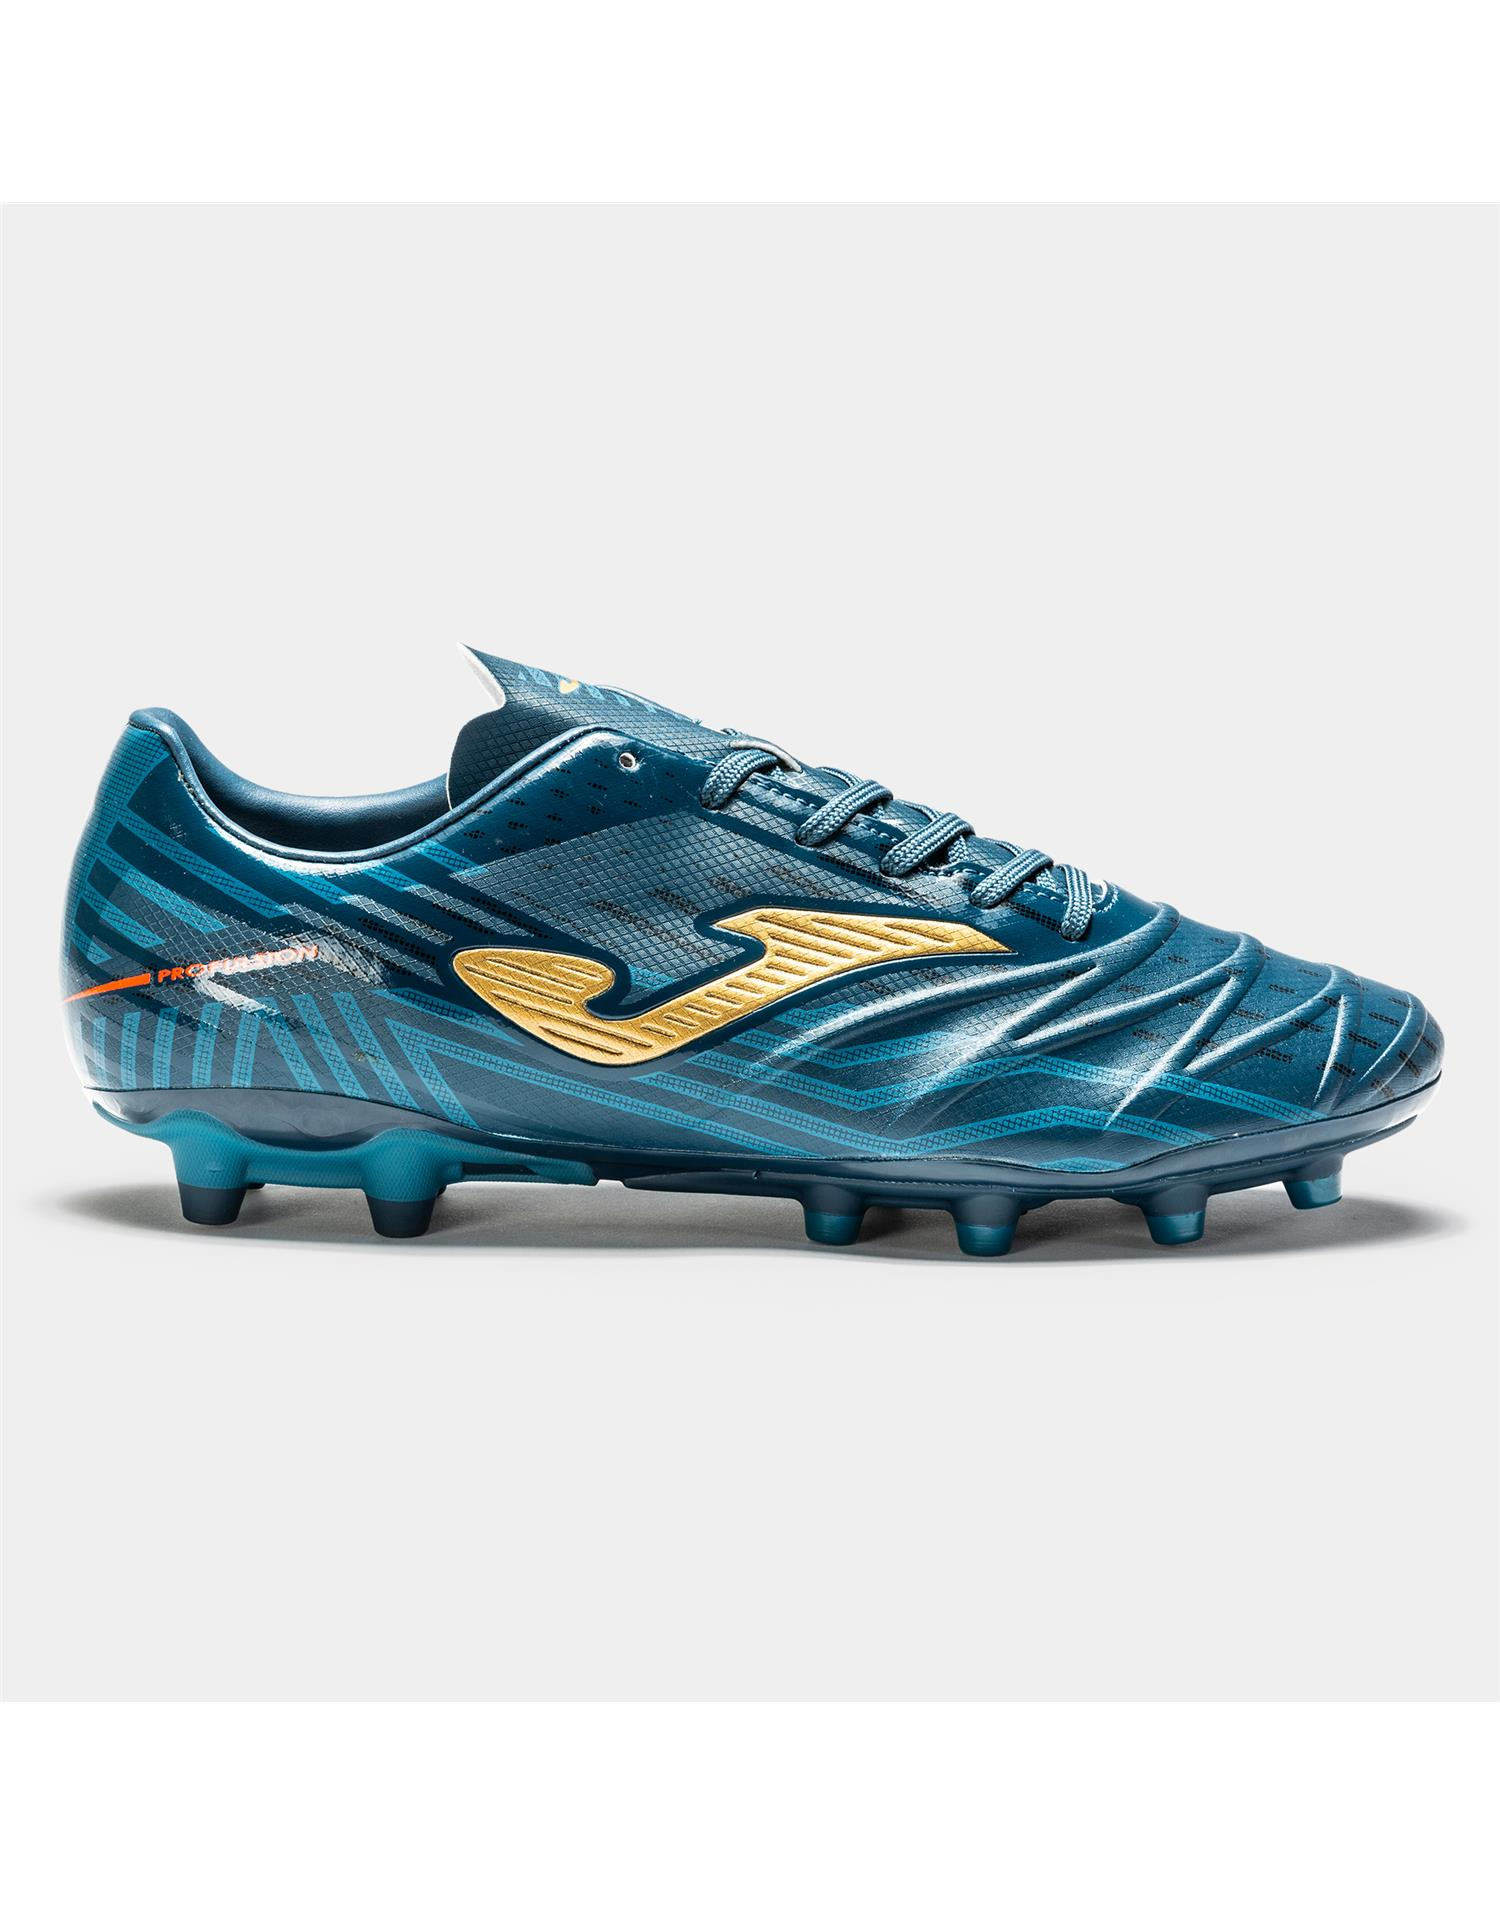 JOMA Scarpa Propulsion 2017 Firm Ground